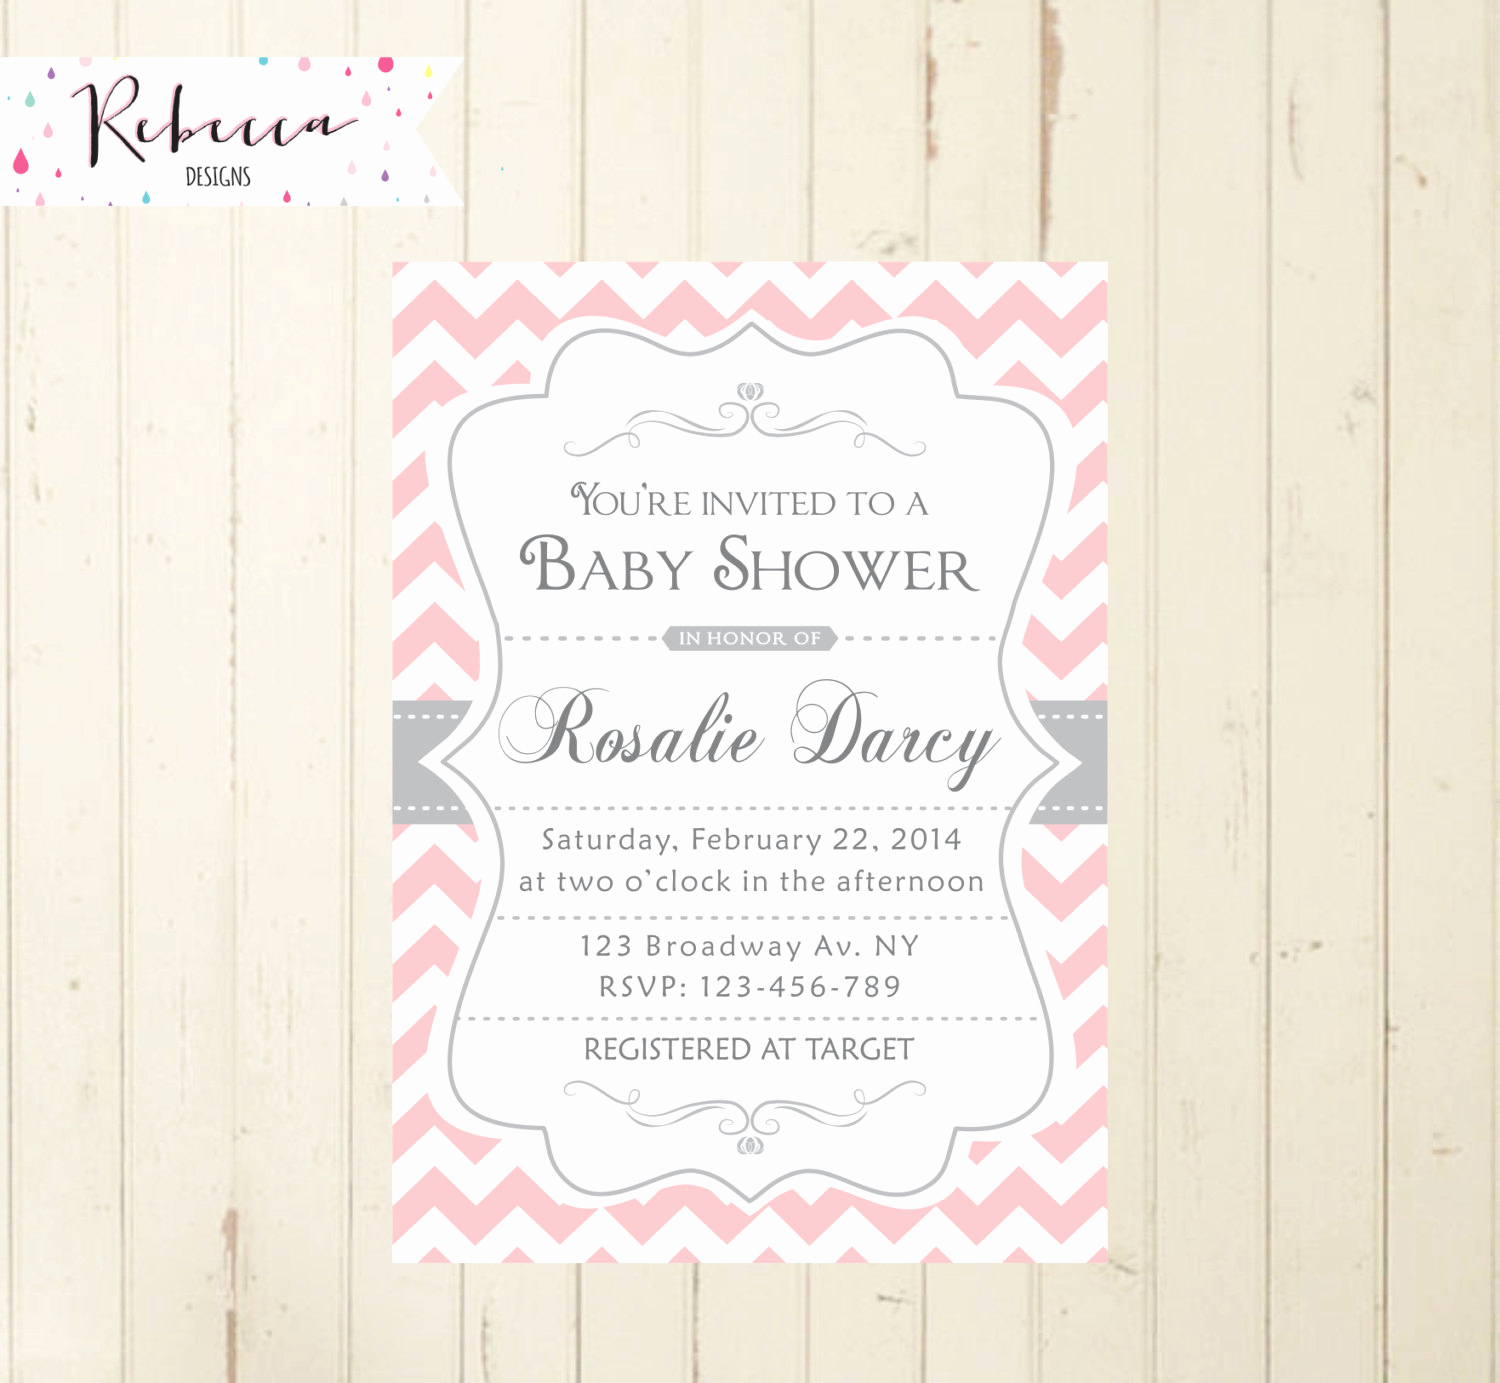 Baby Shower Brunch Invitation Wording Fresh Baby Shower Brunch Invitation Pink Baby Shower Invitation Pink